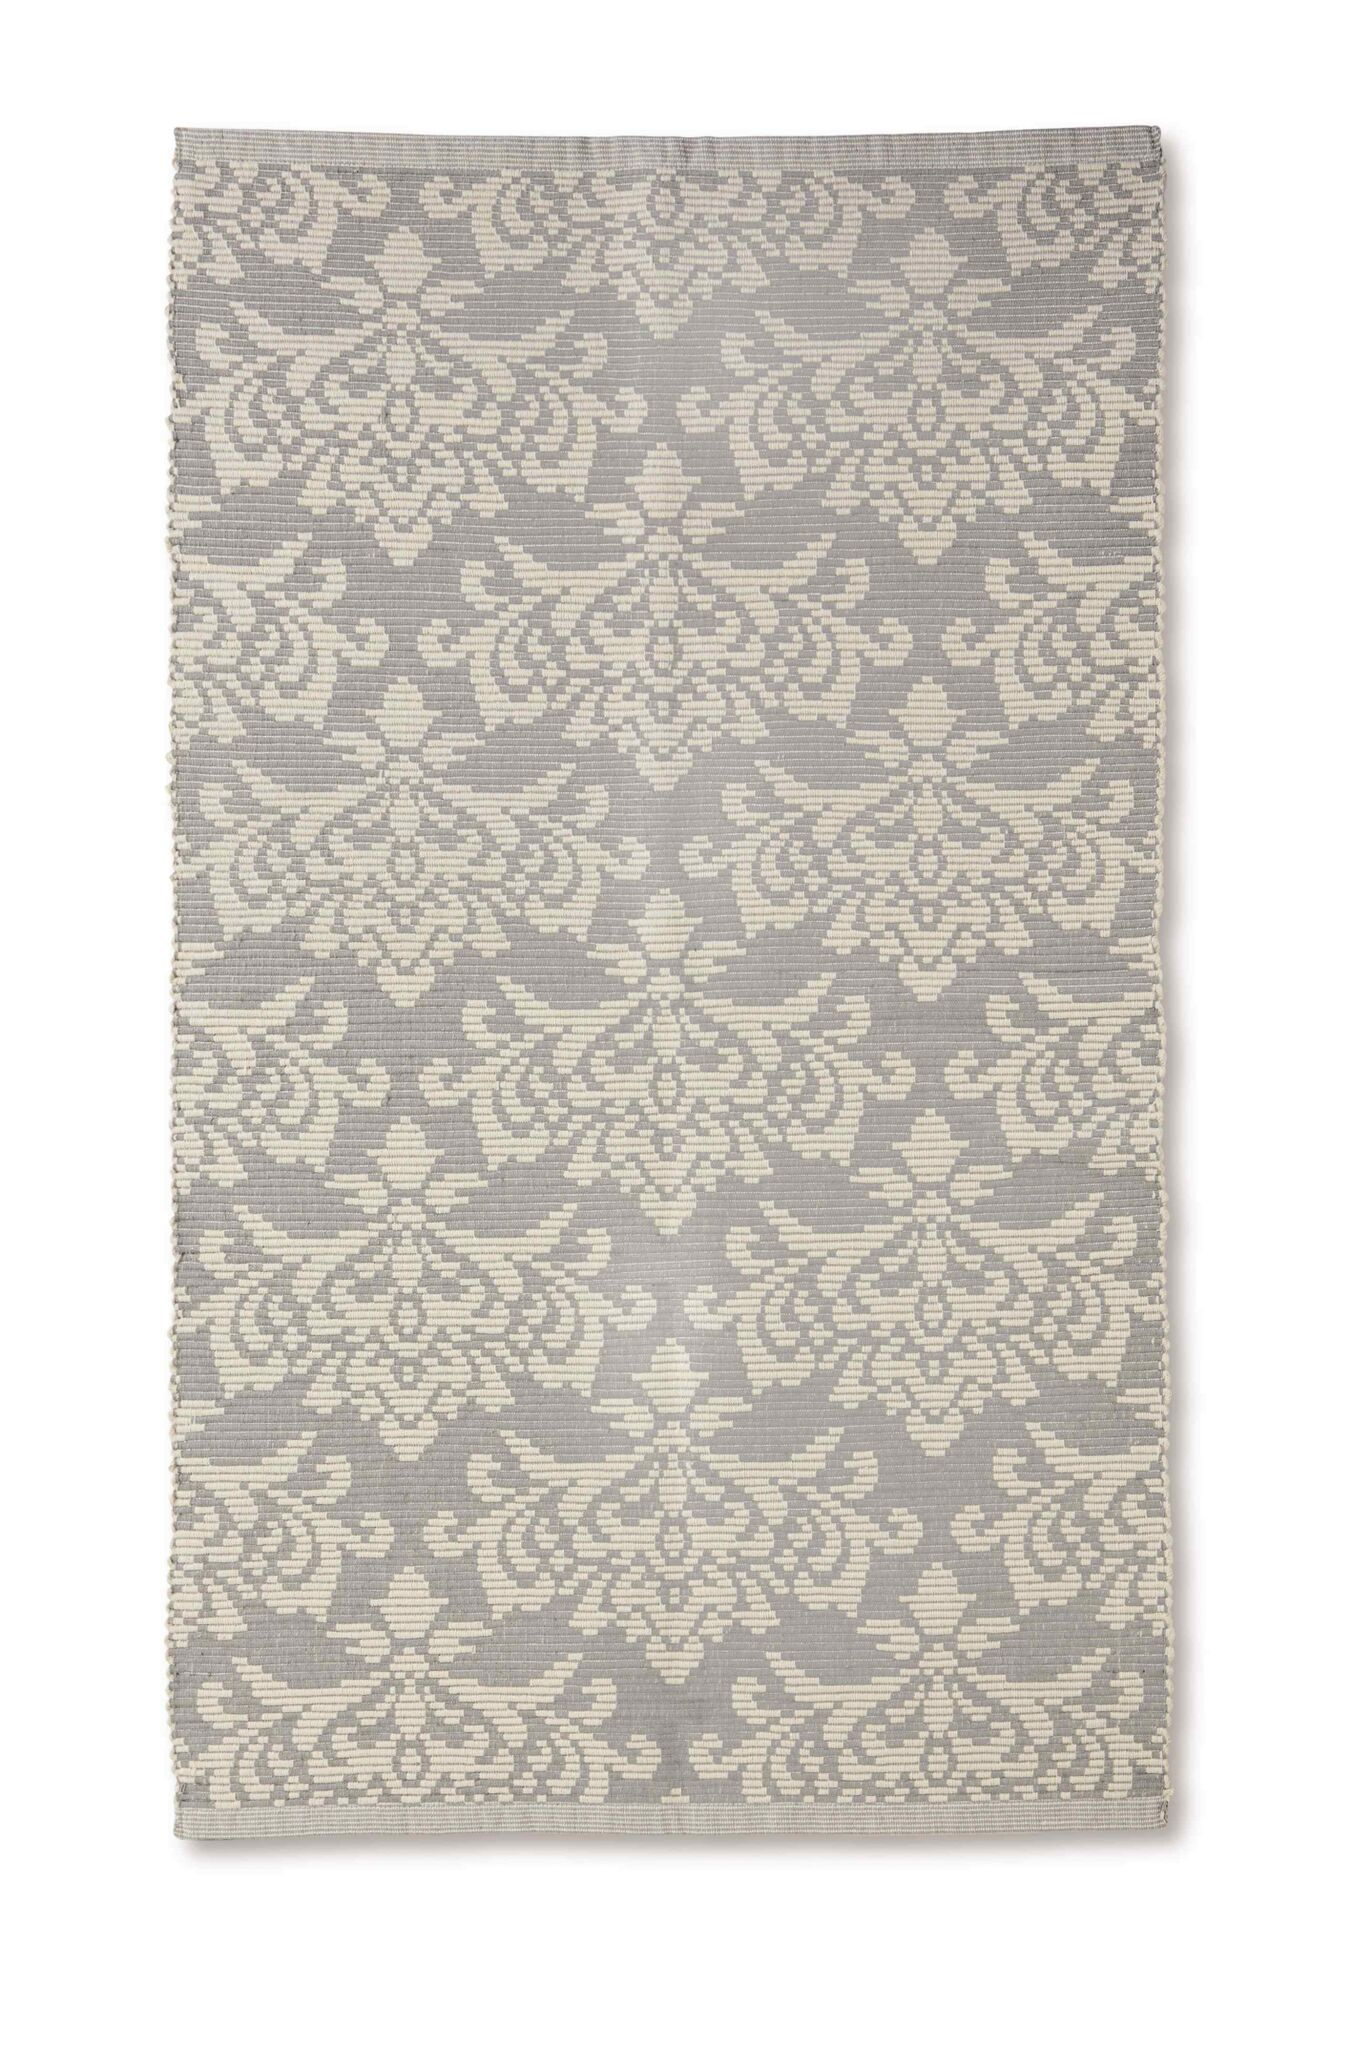 This Fab 15 Rug From Aldi S New Interiors Range Is Bound